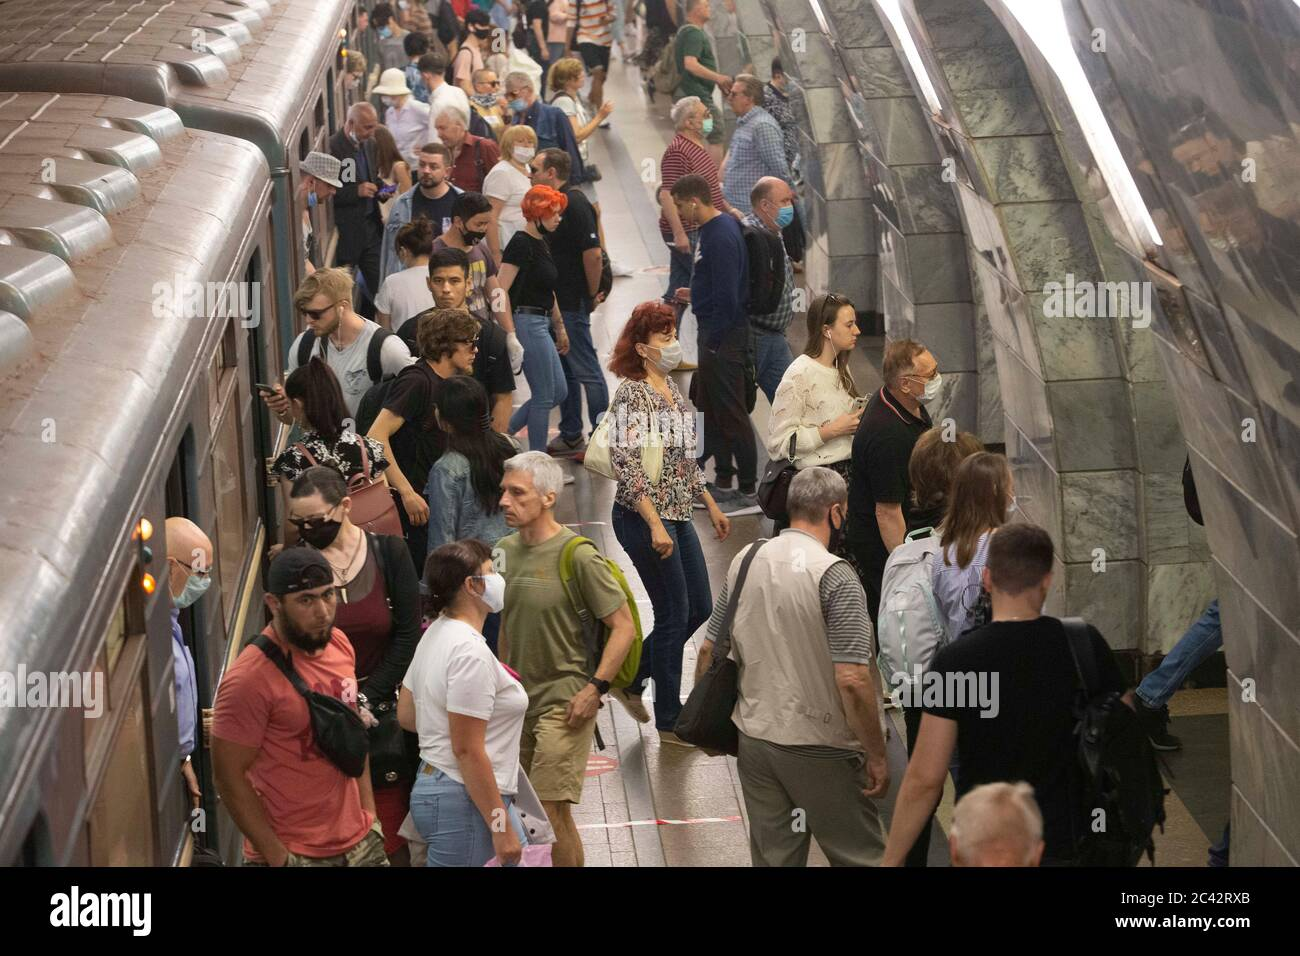 Moscow, Russia. 23rd June, 2020. People are seen at a subway station in Moscow, Russia, on June 23, 2020. Russia recorded 7,425 COVID-19 cases in the past 24 hours, taking its total to 599,705, the country's coronavirus response center said in a statement Tuesday. Credit: Alexander Zemlianichenko Jr/Xinhua/Alamy Live News Stock Photo